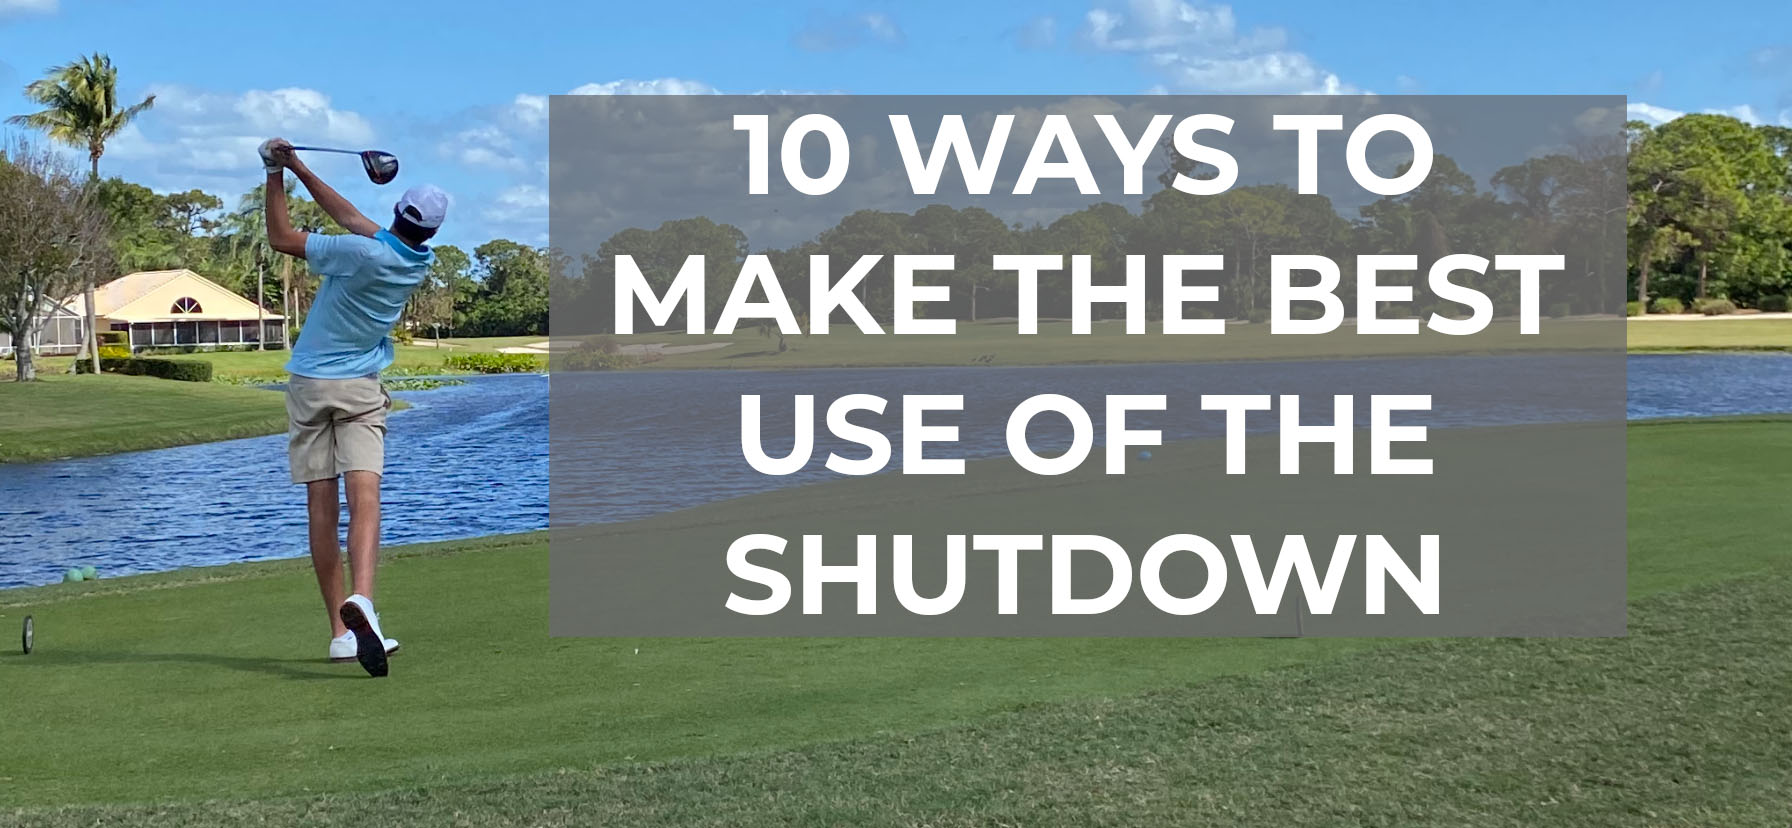 10 Ways To Make Best Use Of The Shutdown